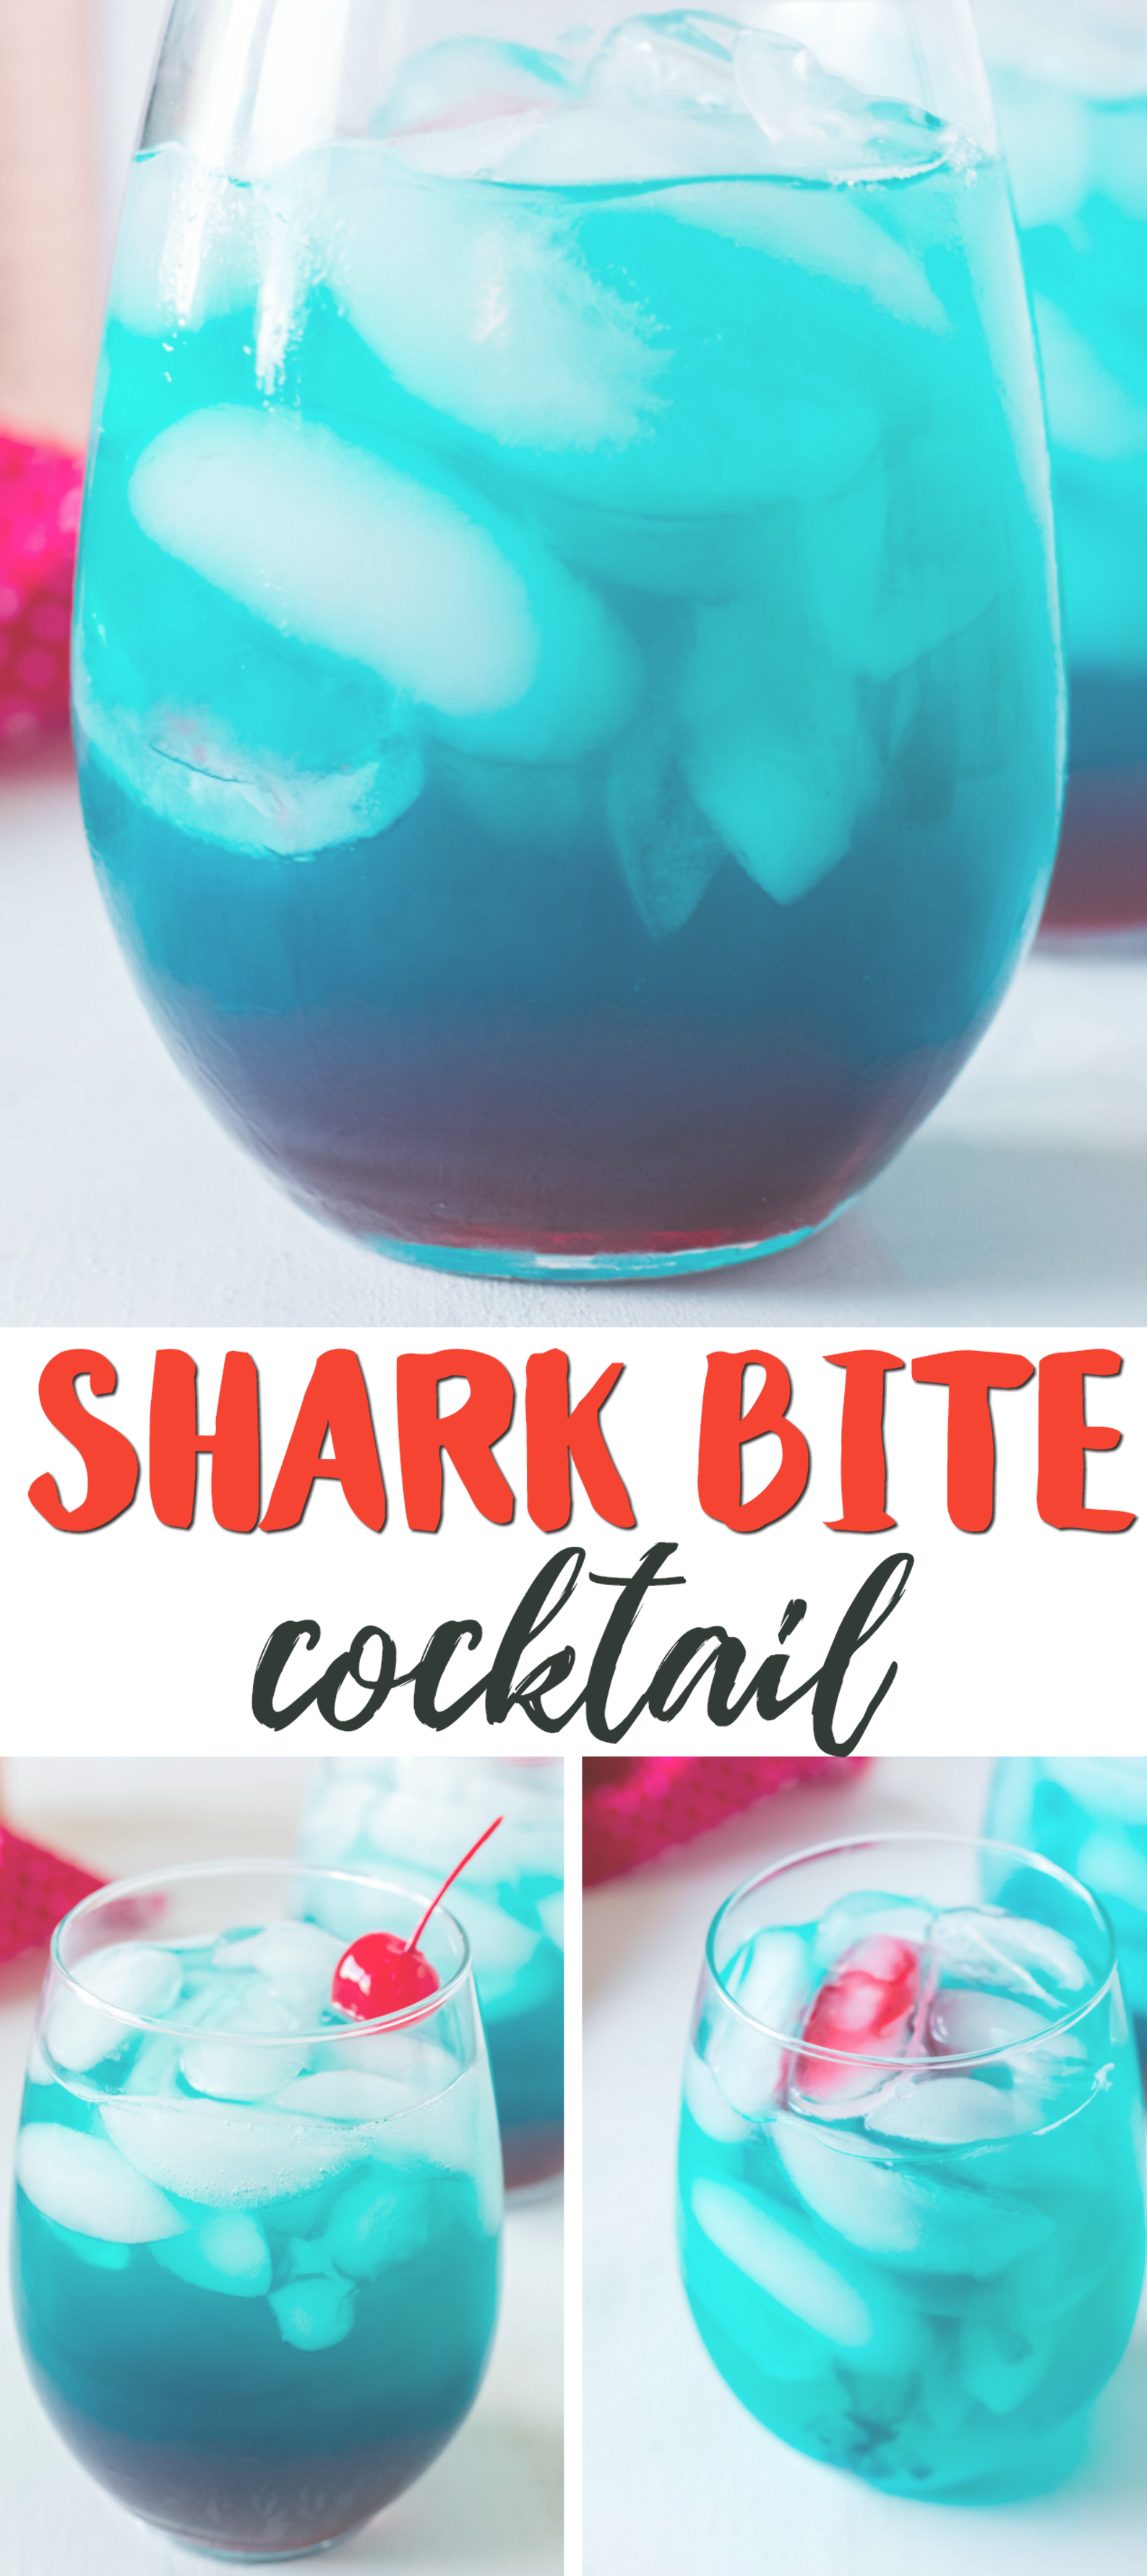 Shark bite cocktail drink is so good!! Perfect summer alcoholic drink using coconut rum, grenadine, sweet and sour mix, and blue curacao! Shark week drink to make. #drinks #sharkbite #cocktails #alcoholicbeverages #alcoholicdrinks #craftymorning #sharkweekfood